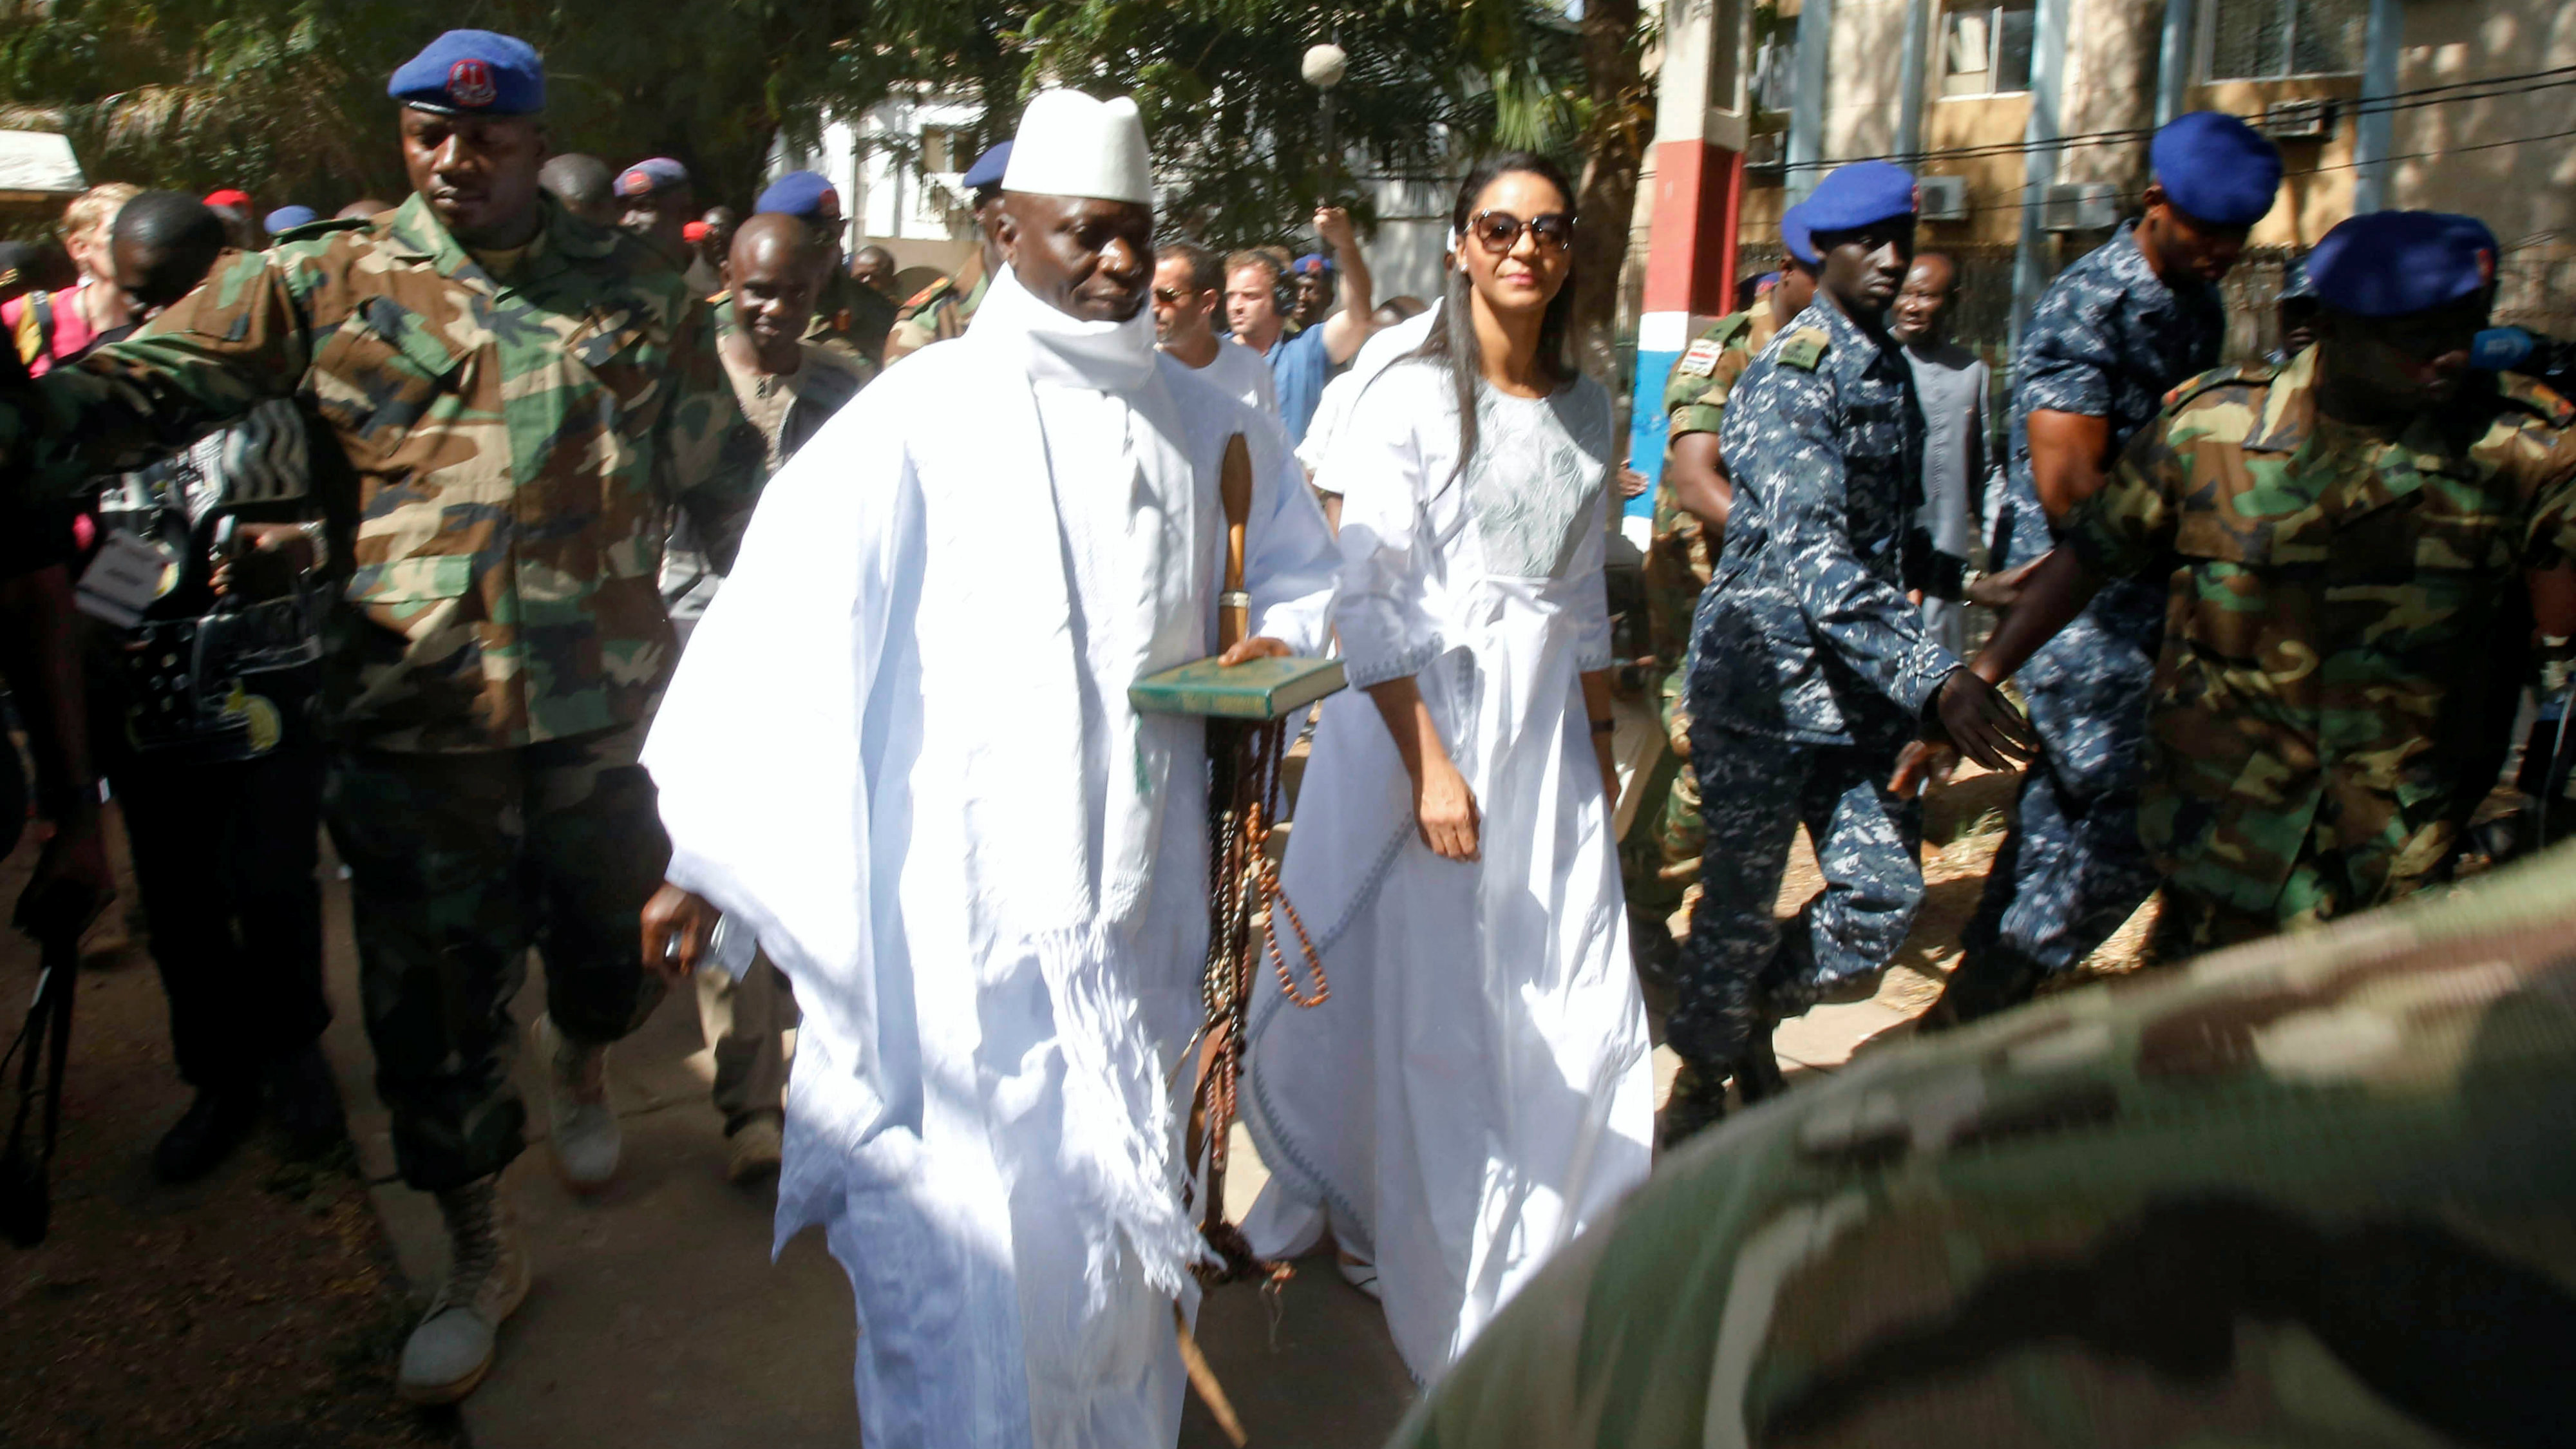 Gambian President Yahya Jammeh arrives at a polling station with his wife Zineb during the presidential election in Banjul, Gambia, December 1, 2016